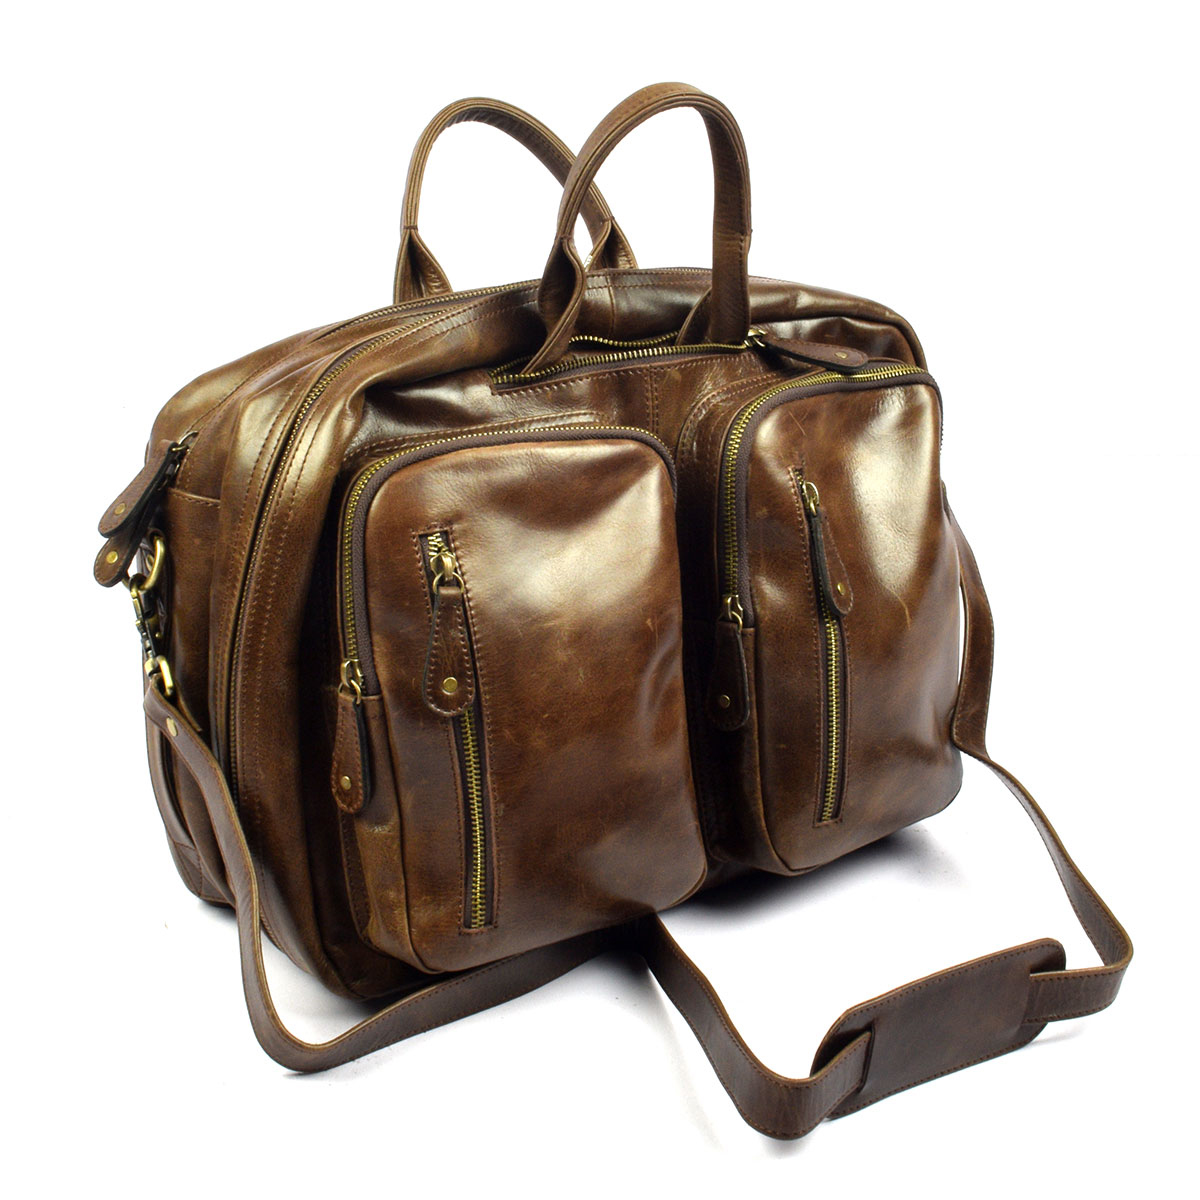 Original Top Quality Leather Bag, Multipurpose Mens Duffel - Trendy Pakistan